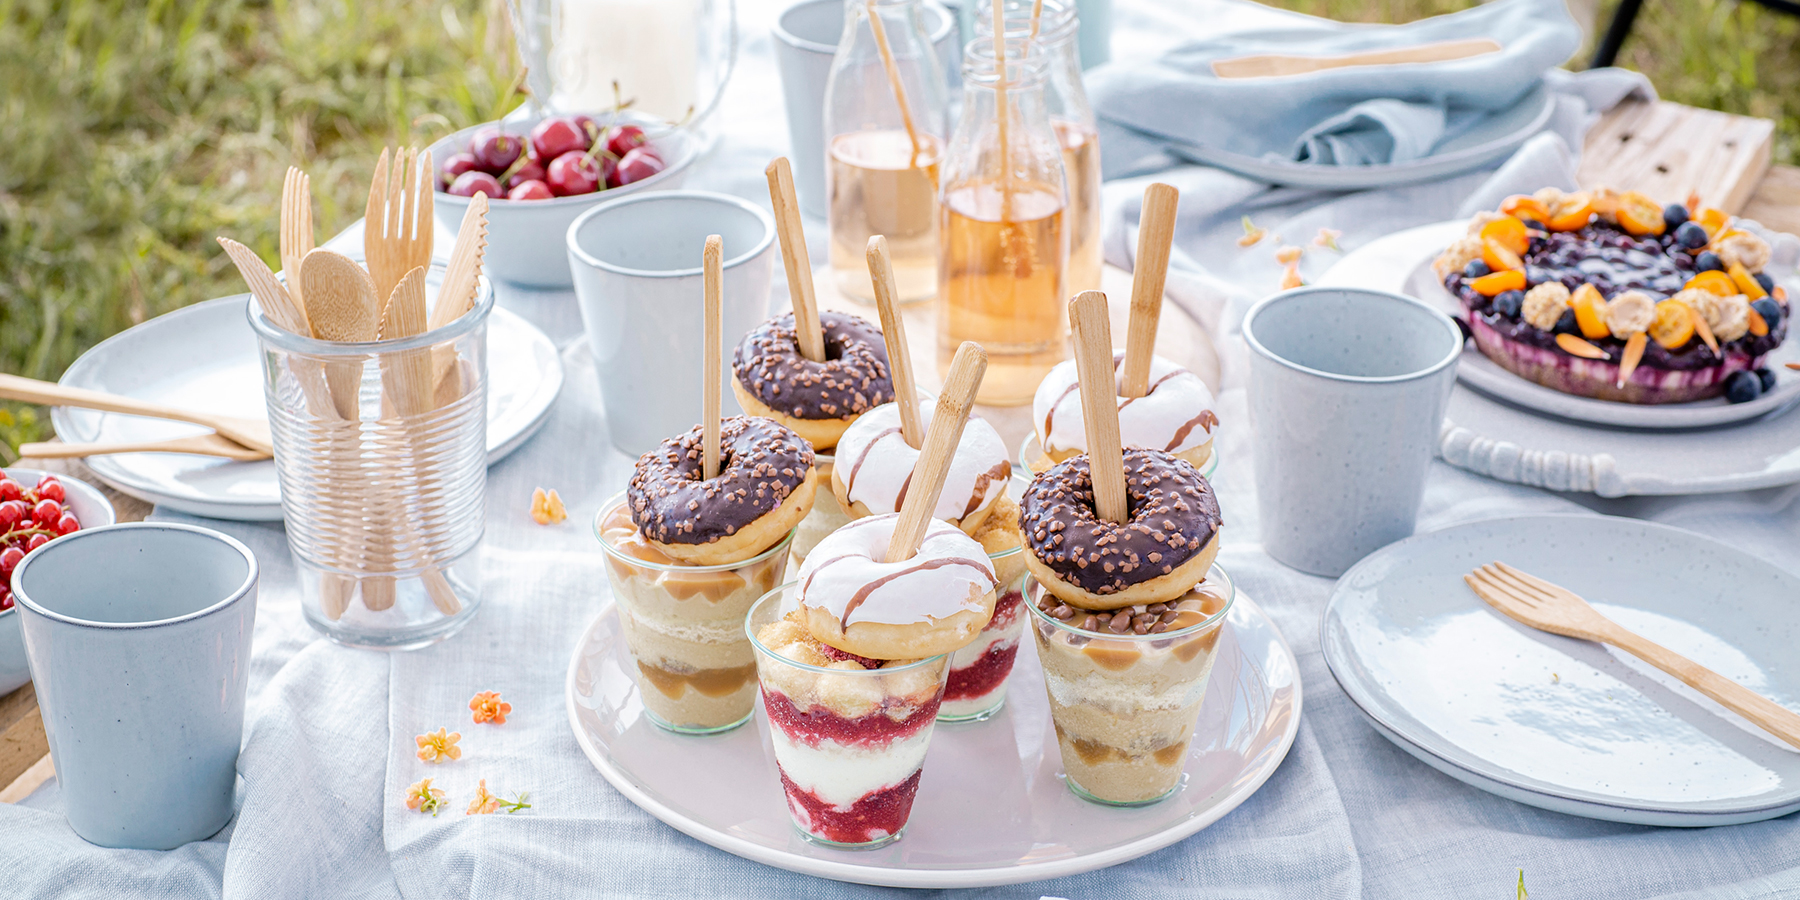 Mix & Match: Salted-Caramel-Dessert mit Donut-Topping